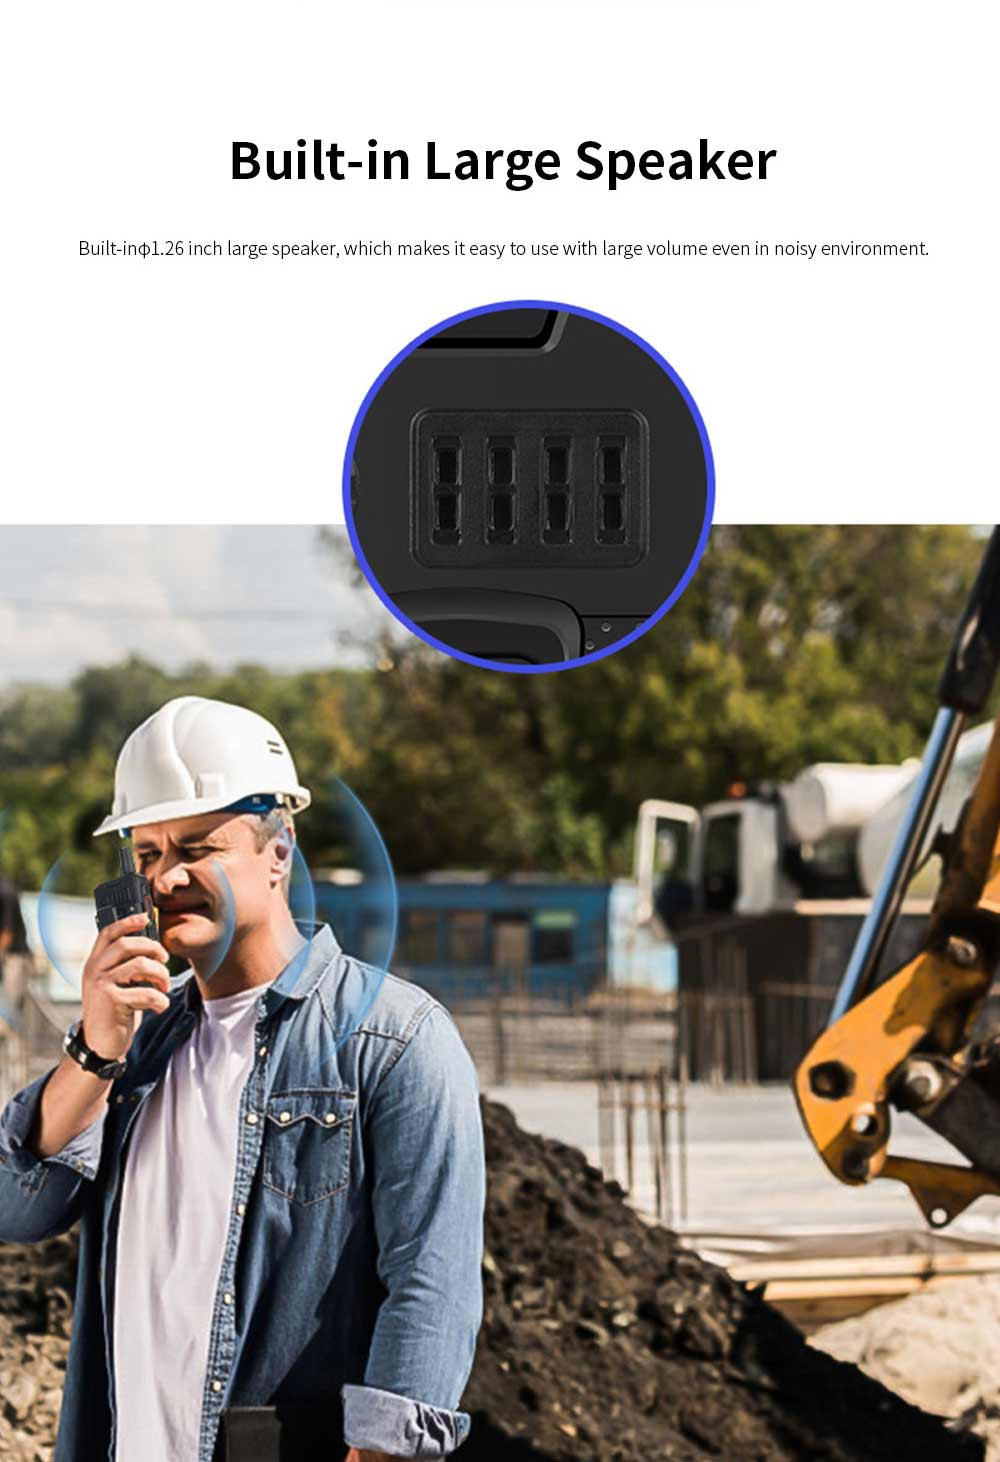 UNIWA F22 Rechargeable 4G Two-Way Radios Walkie Talkies 4000mAh Battery Powered 2.4 Inch Screen GPS Android Smart PPT Intercom Phone 7